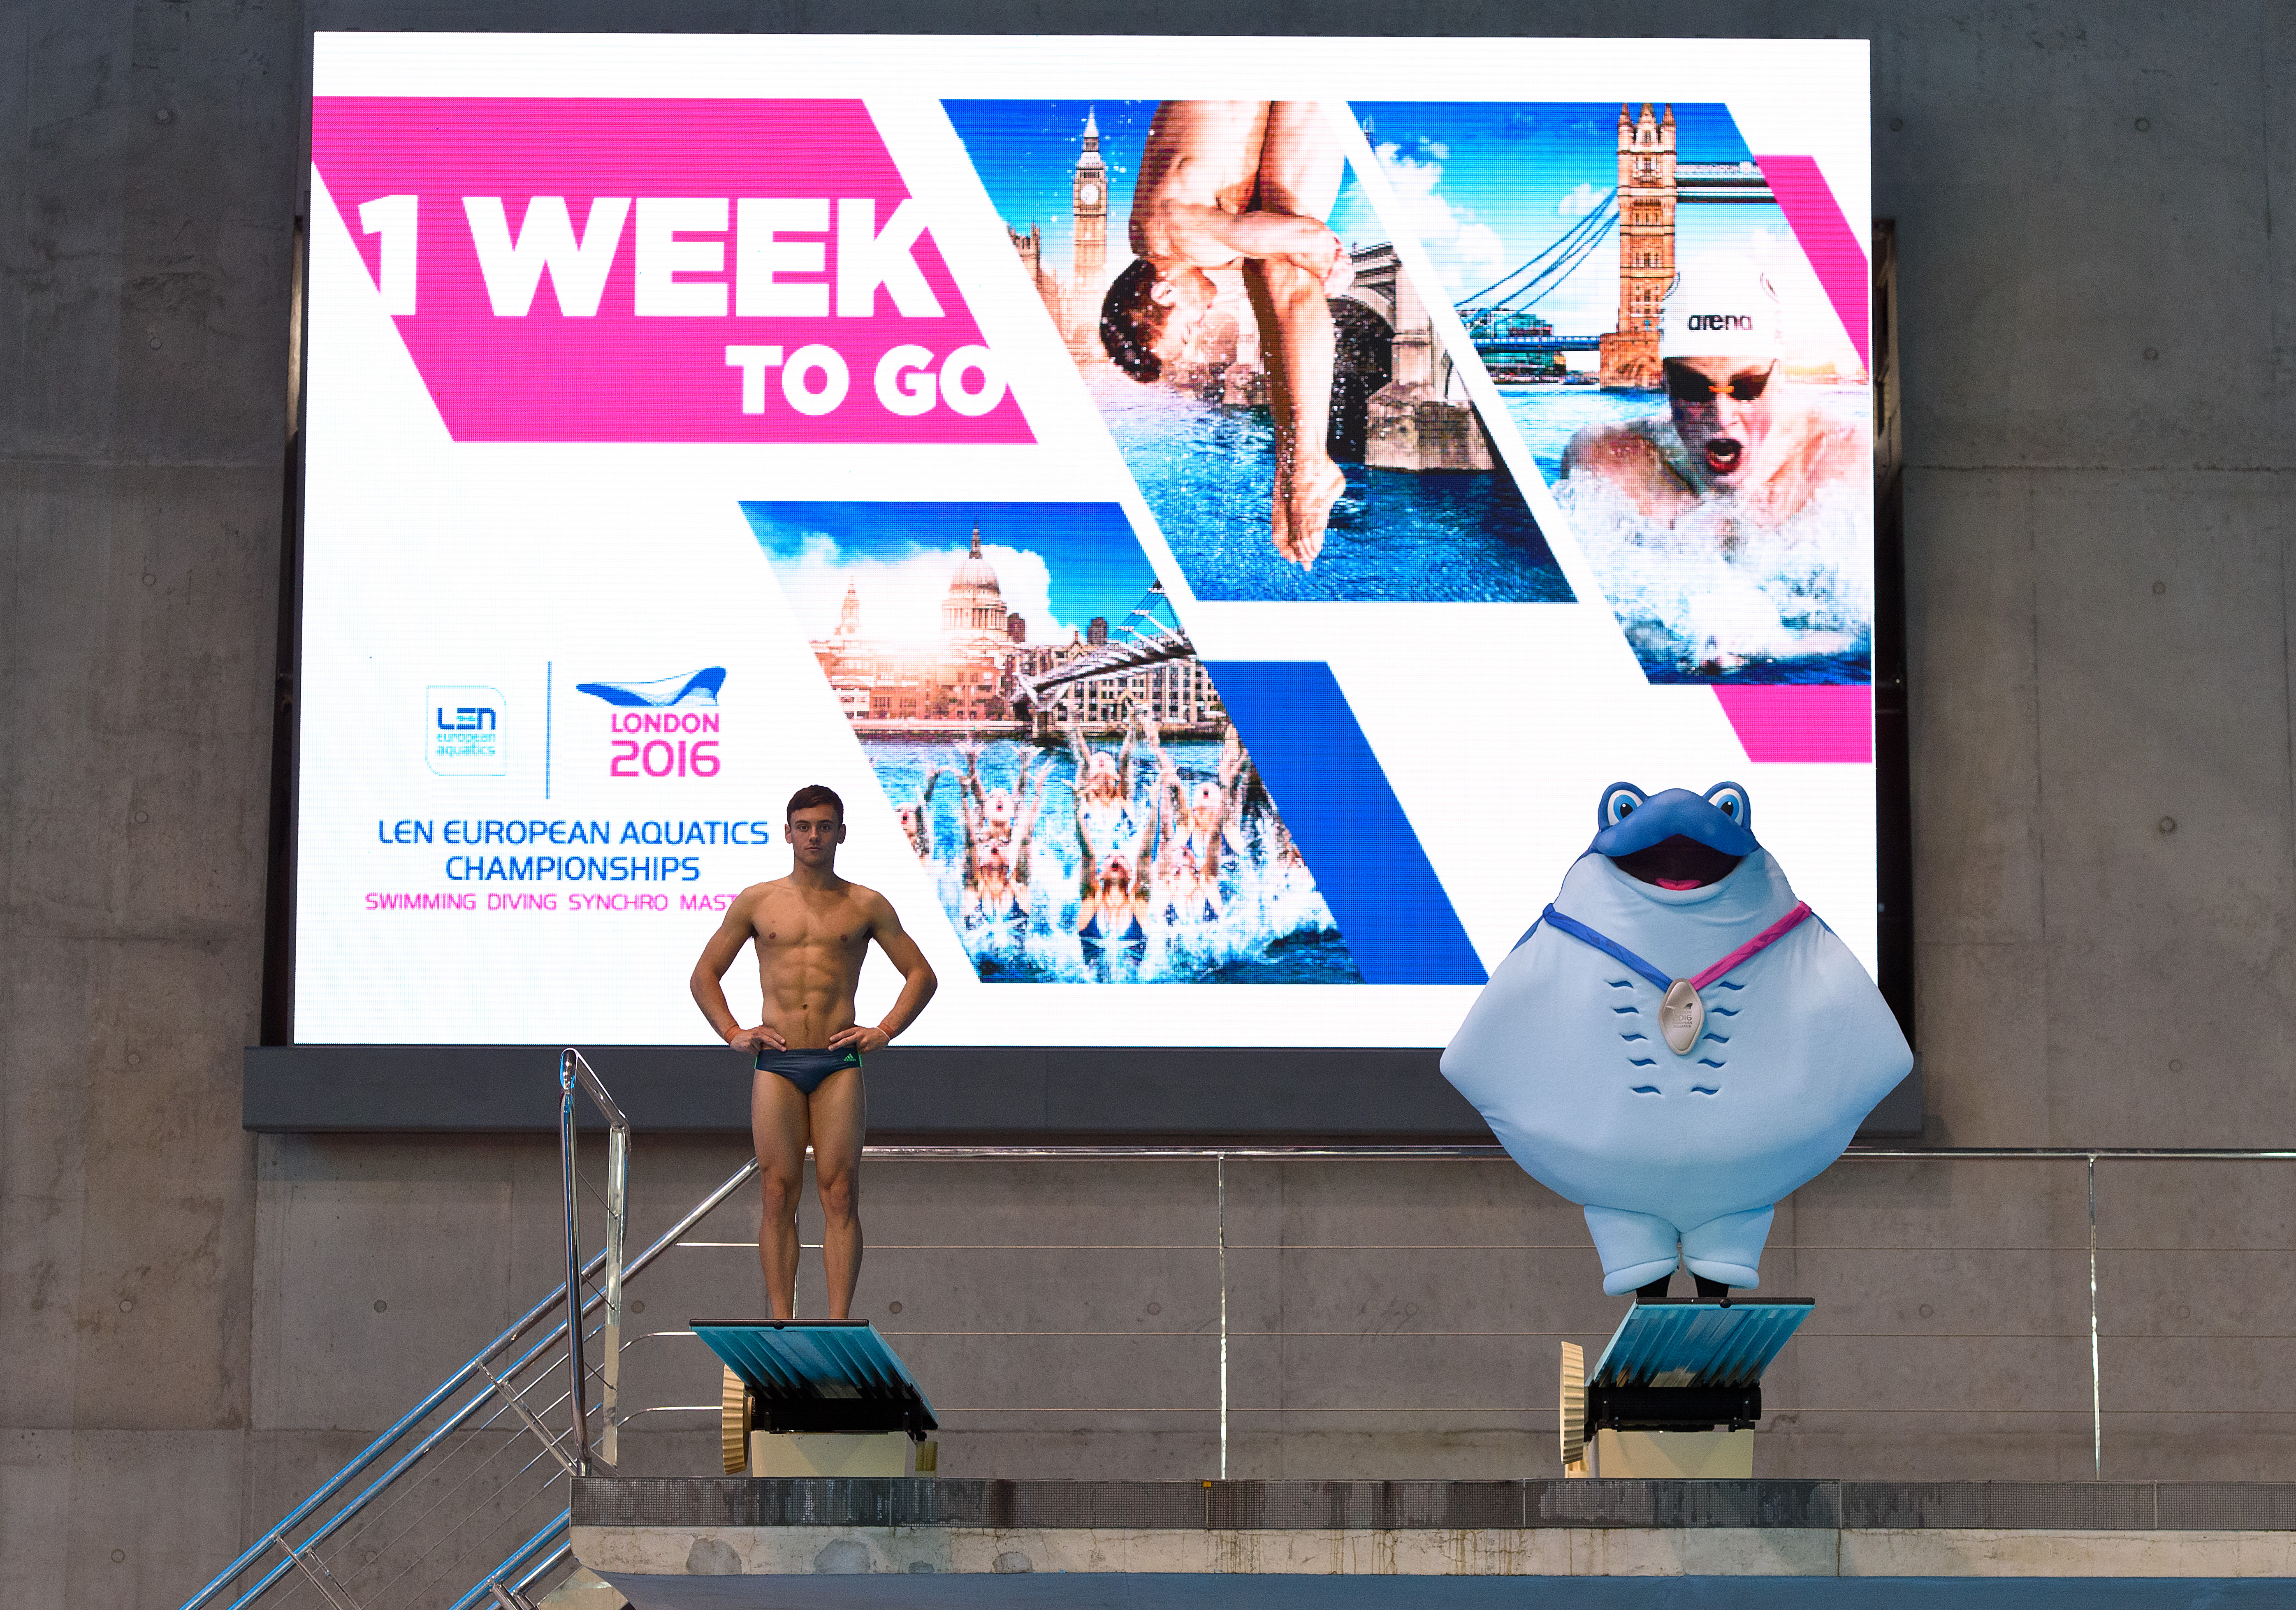 """""""LONDON, ENGLAND - MAY 02: Diver Tom Daley poses with mascot Ray during a media event at the London Aquatics Centre onÊMay 2, 2016 in London, England. The London 2016 LEN European Aquatics Championships start on the 9th May 2016. (Photo by Ben A. Pruchnie/Getty Images for London 2016 LEN European Aquatics Championship)"""""""